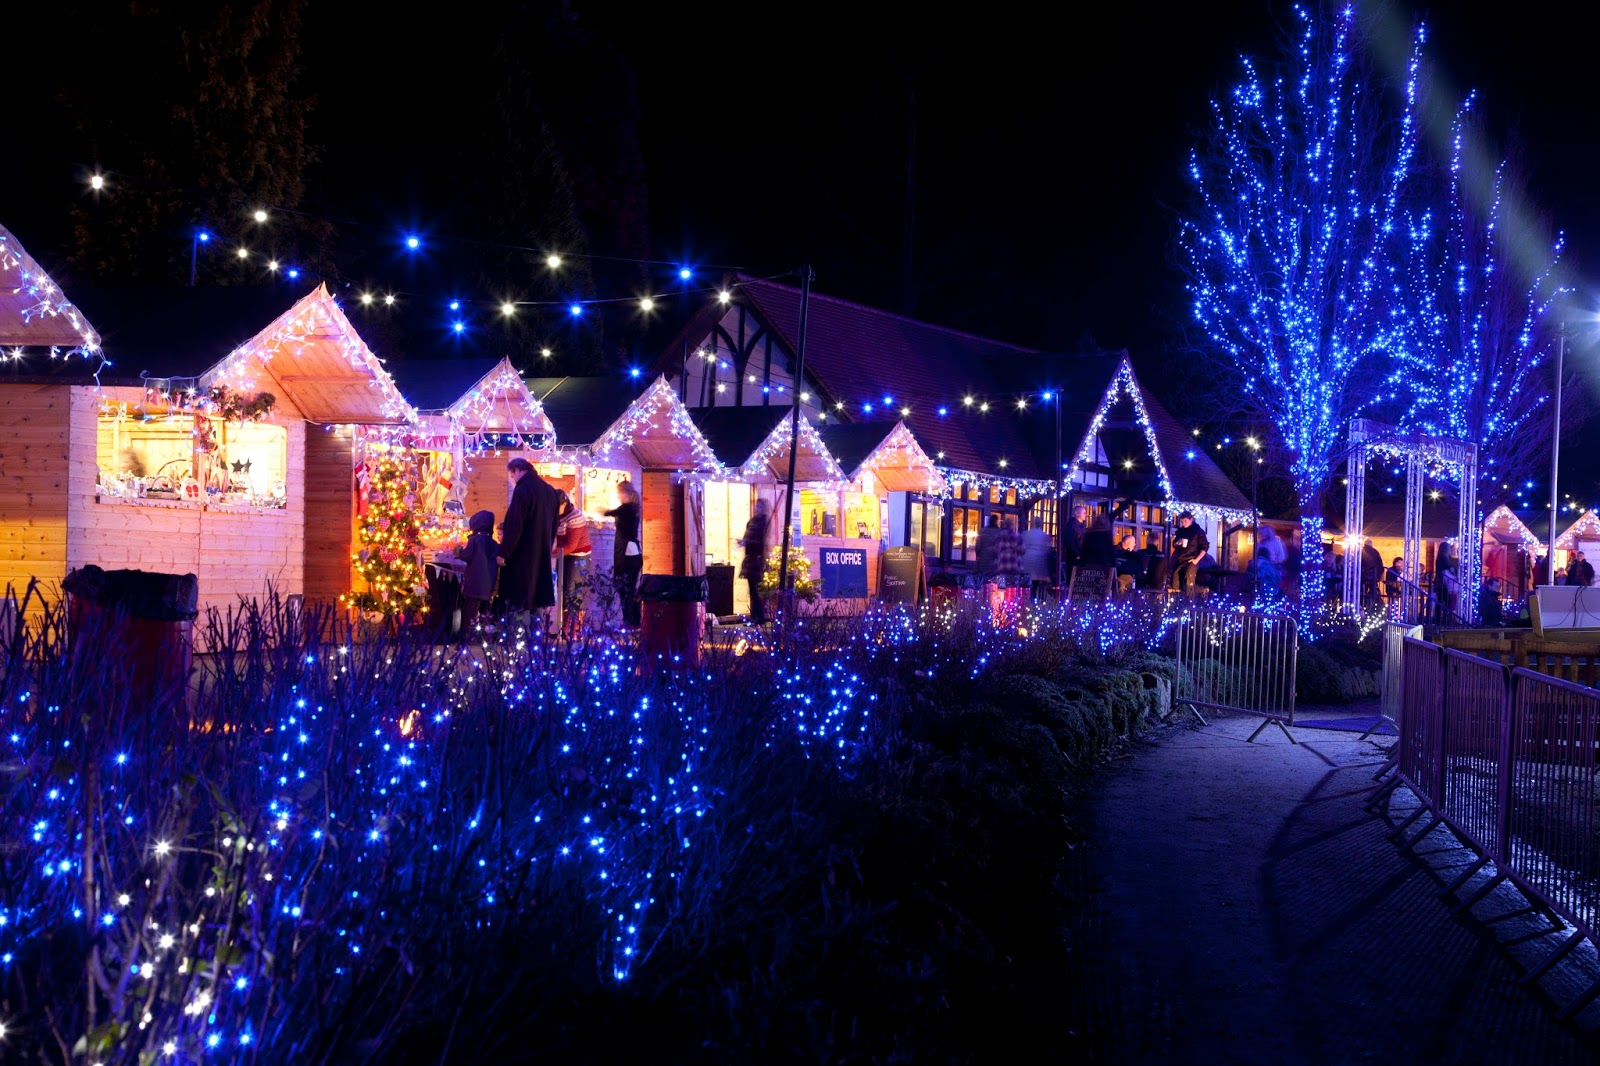 Miscriant: Feeling Festive: The Best Kent Attractions This Christmas